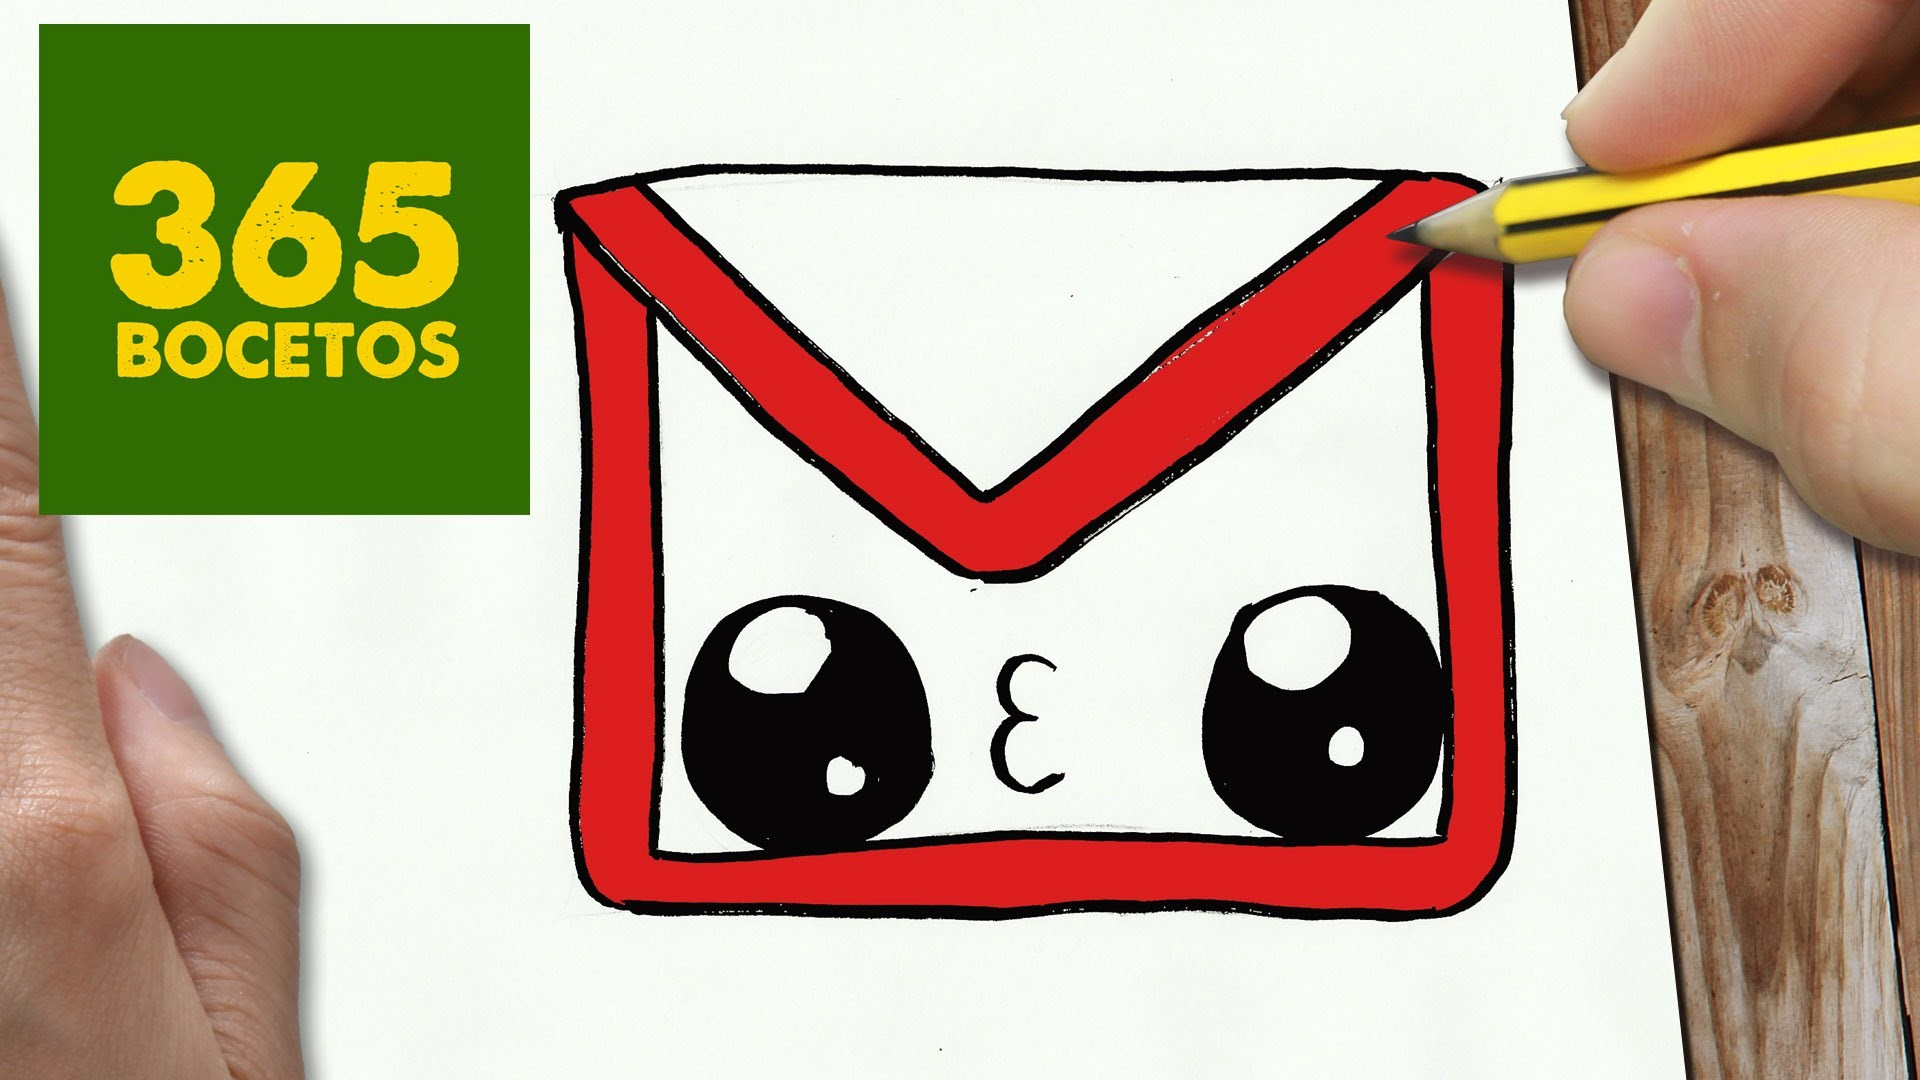 COMO DIBUJAR LOGO GMAIL KAWAII PASO A PASO - Dibujos kawaii faciles - How to draw a logo Gmail